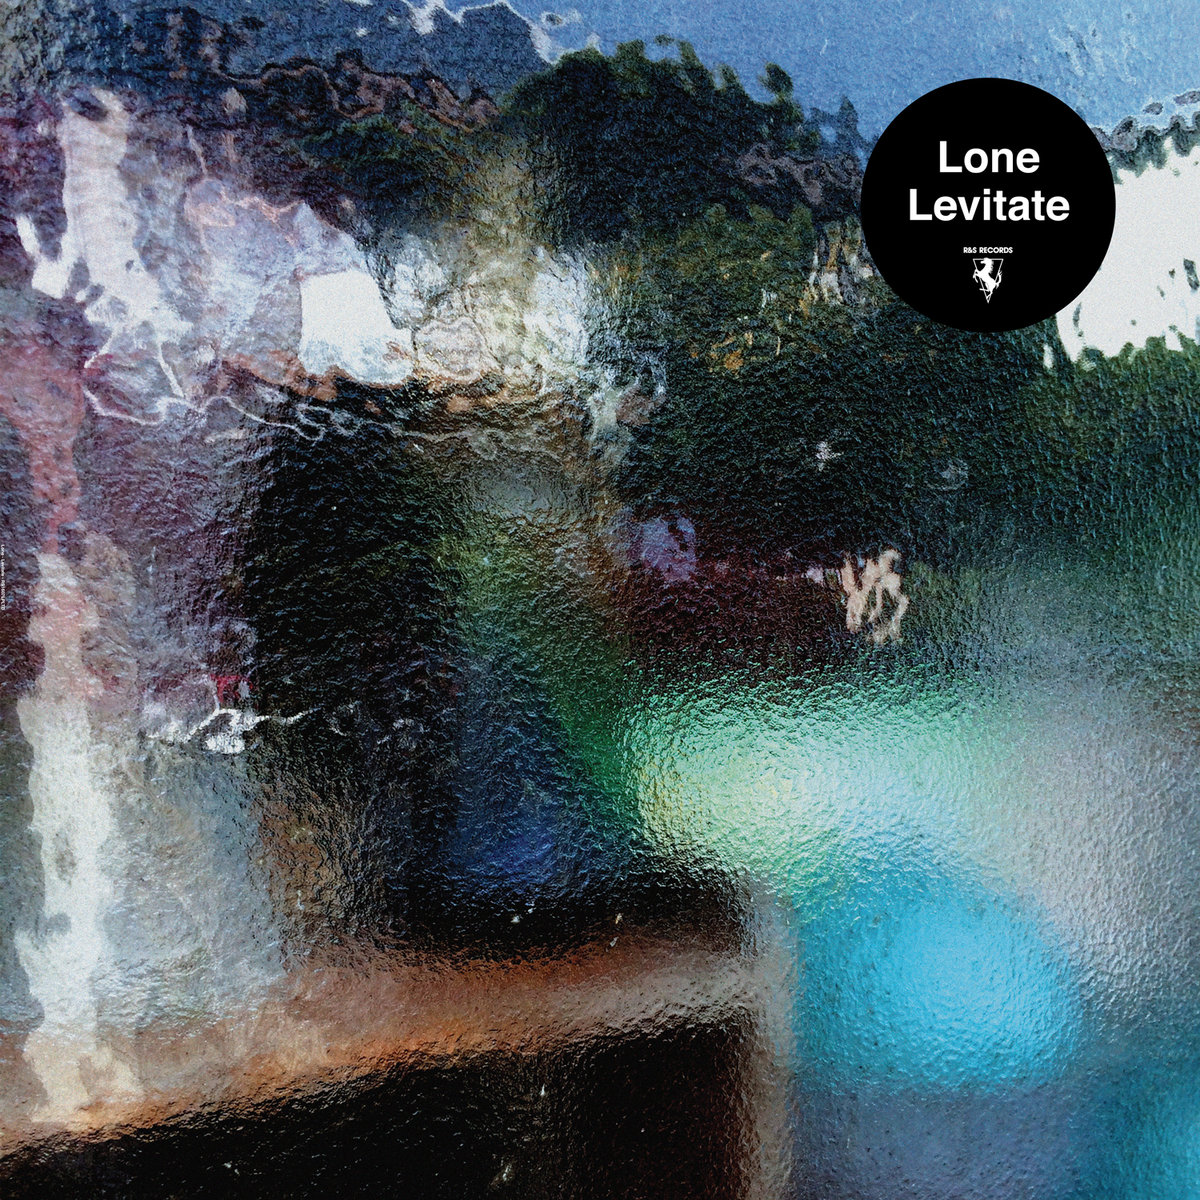 Lone : Levitate | Has it leaked?